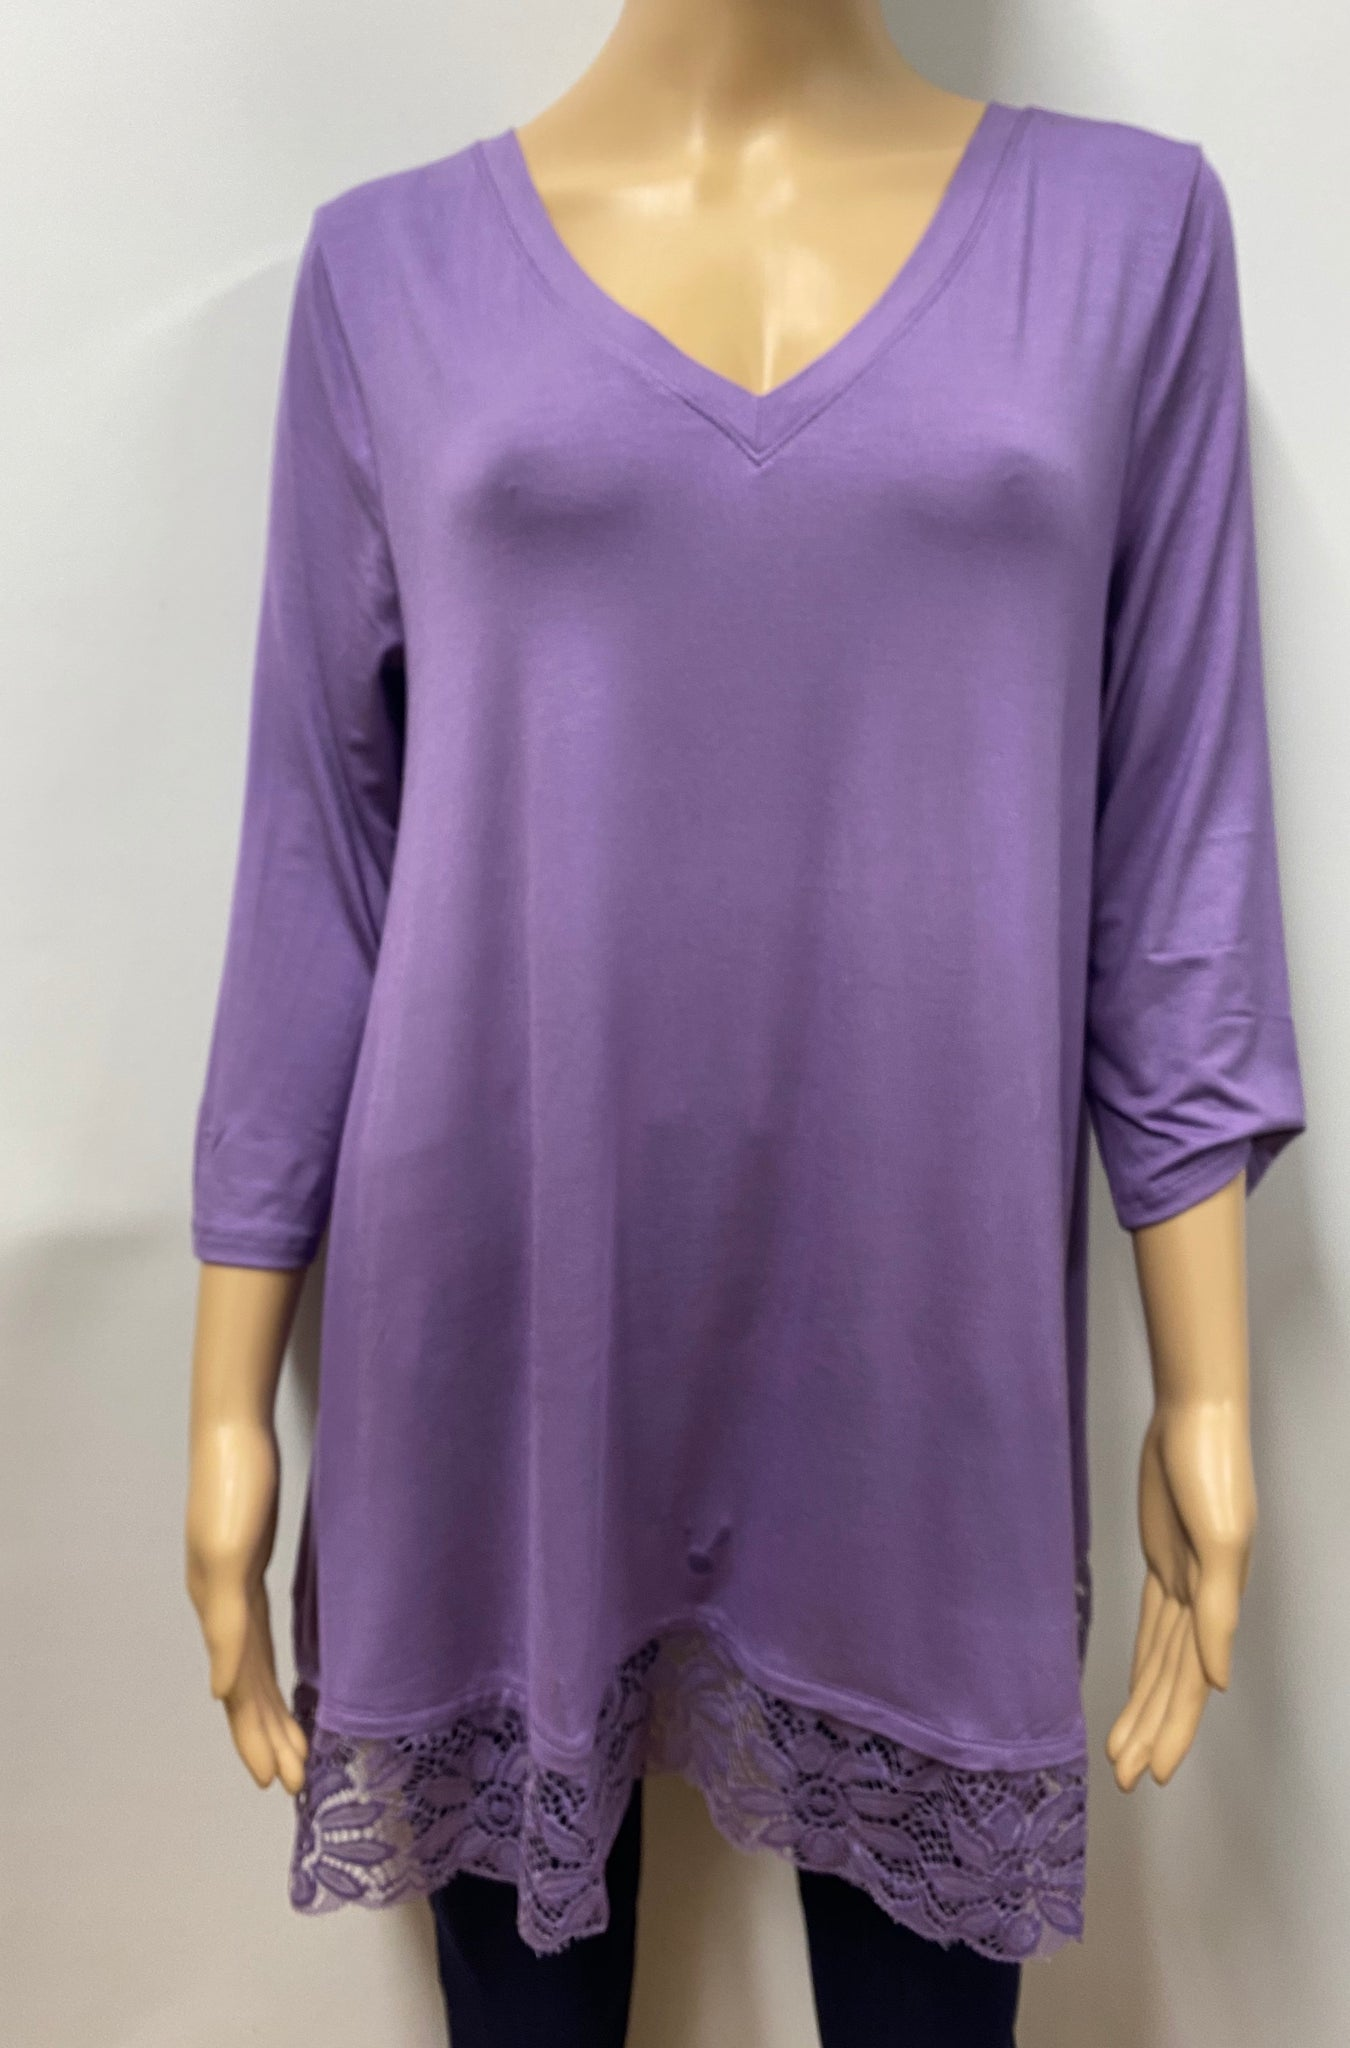 Lilac  3/4 Sleeve V-Neck Top with Lace Bottom Trim